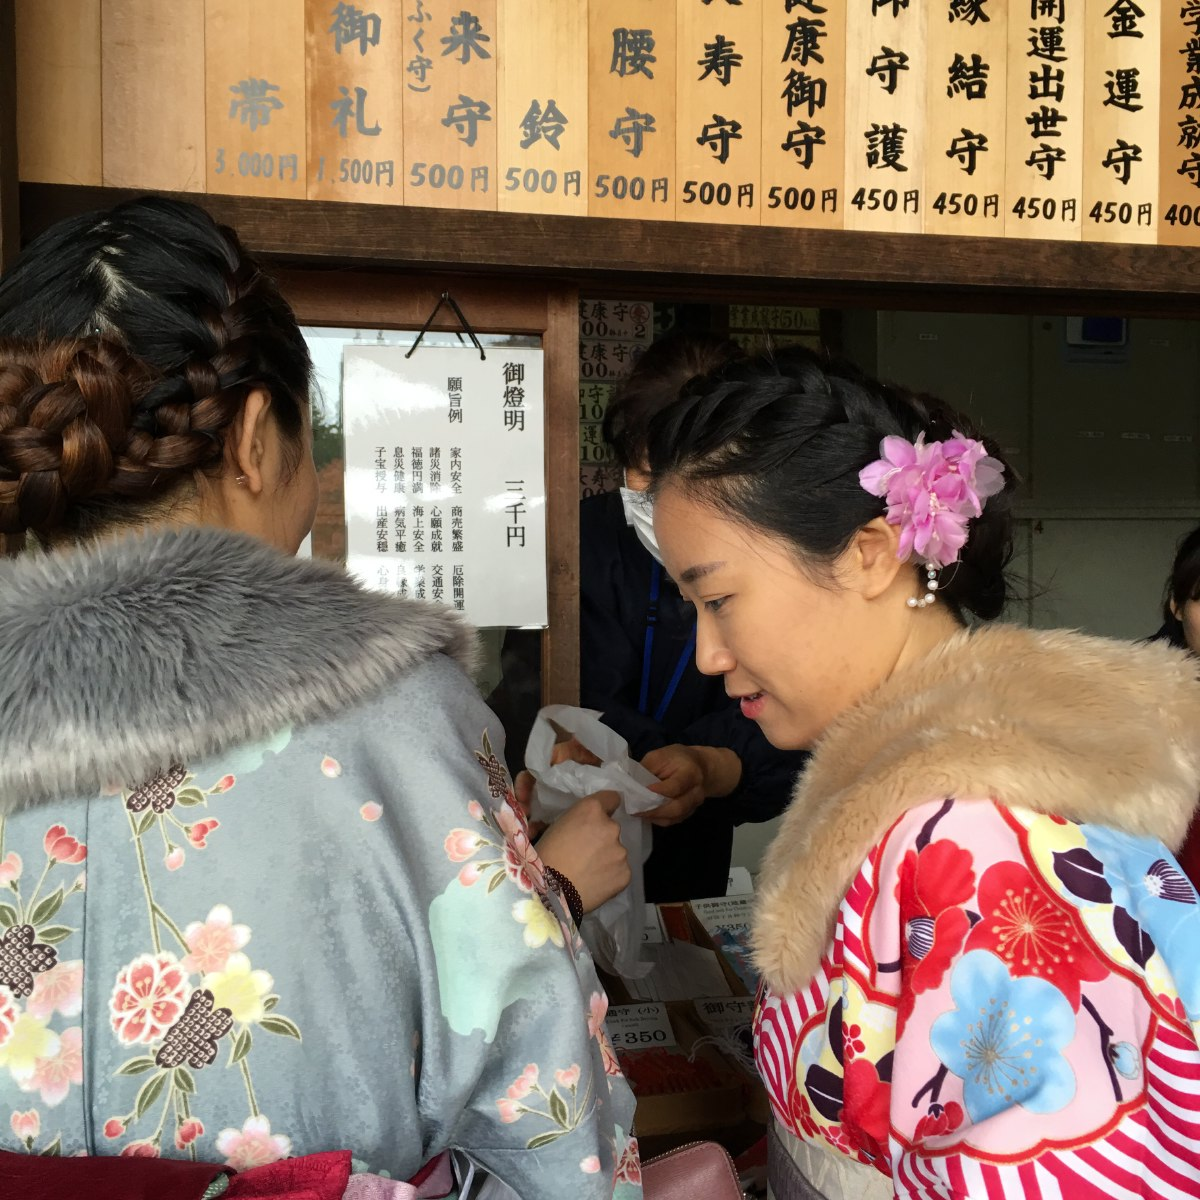 Although kimonos are no longer everyday wear in Japan, people still like to wear them at various times throughout the year. And when they do, they use the fabrics, colors, and designs of their kimonos to express their love of the seasons.